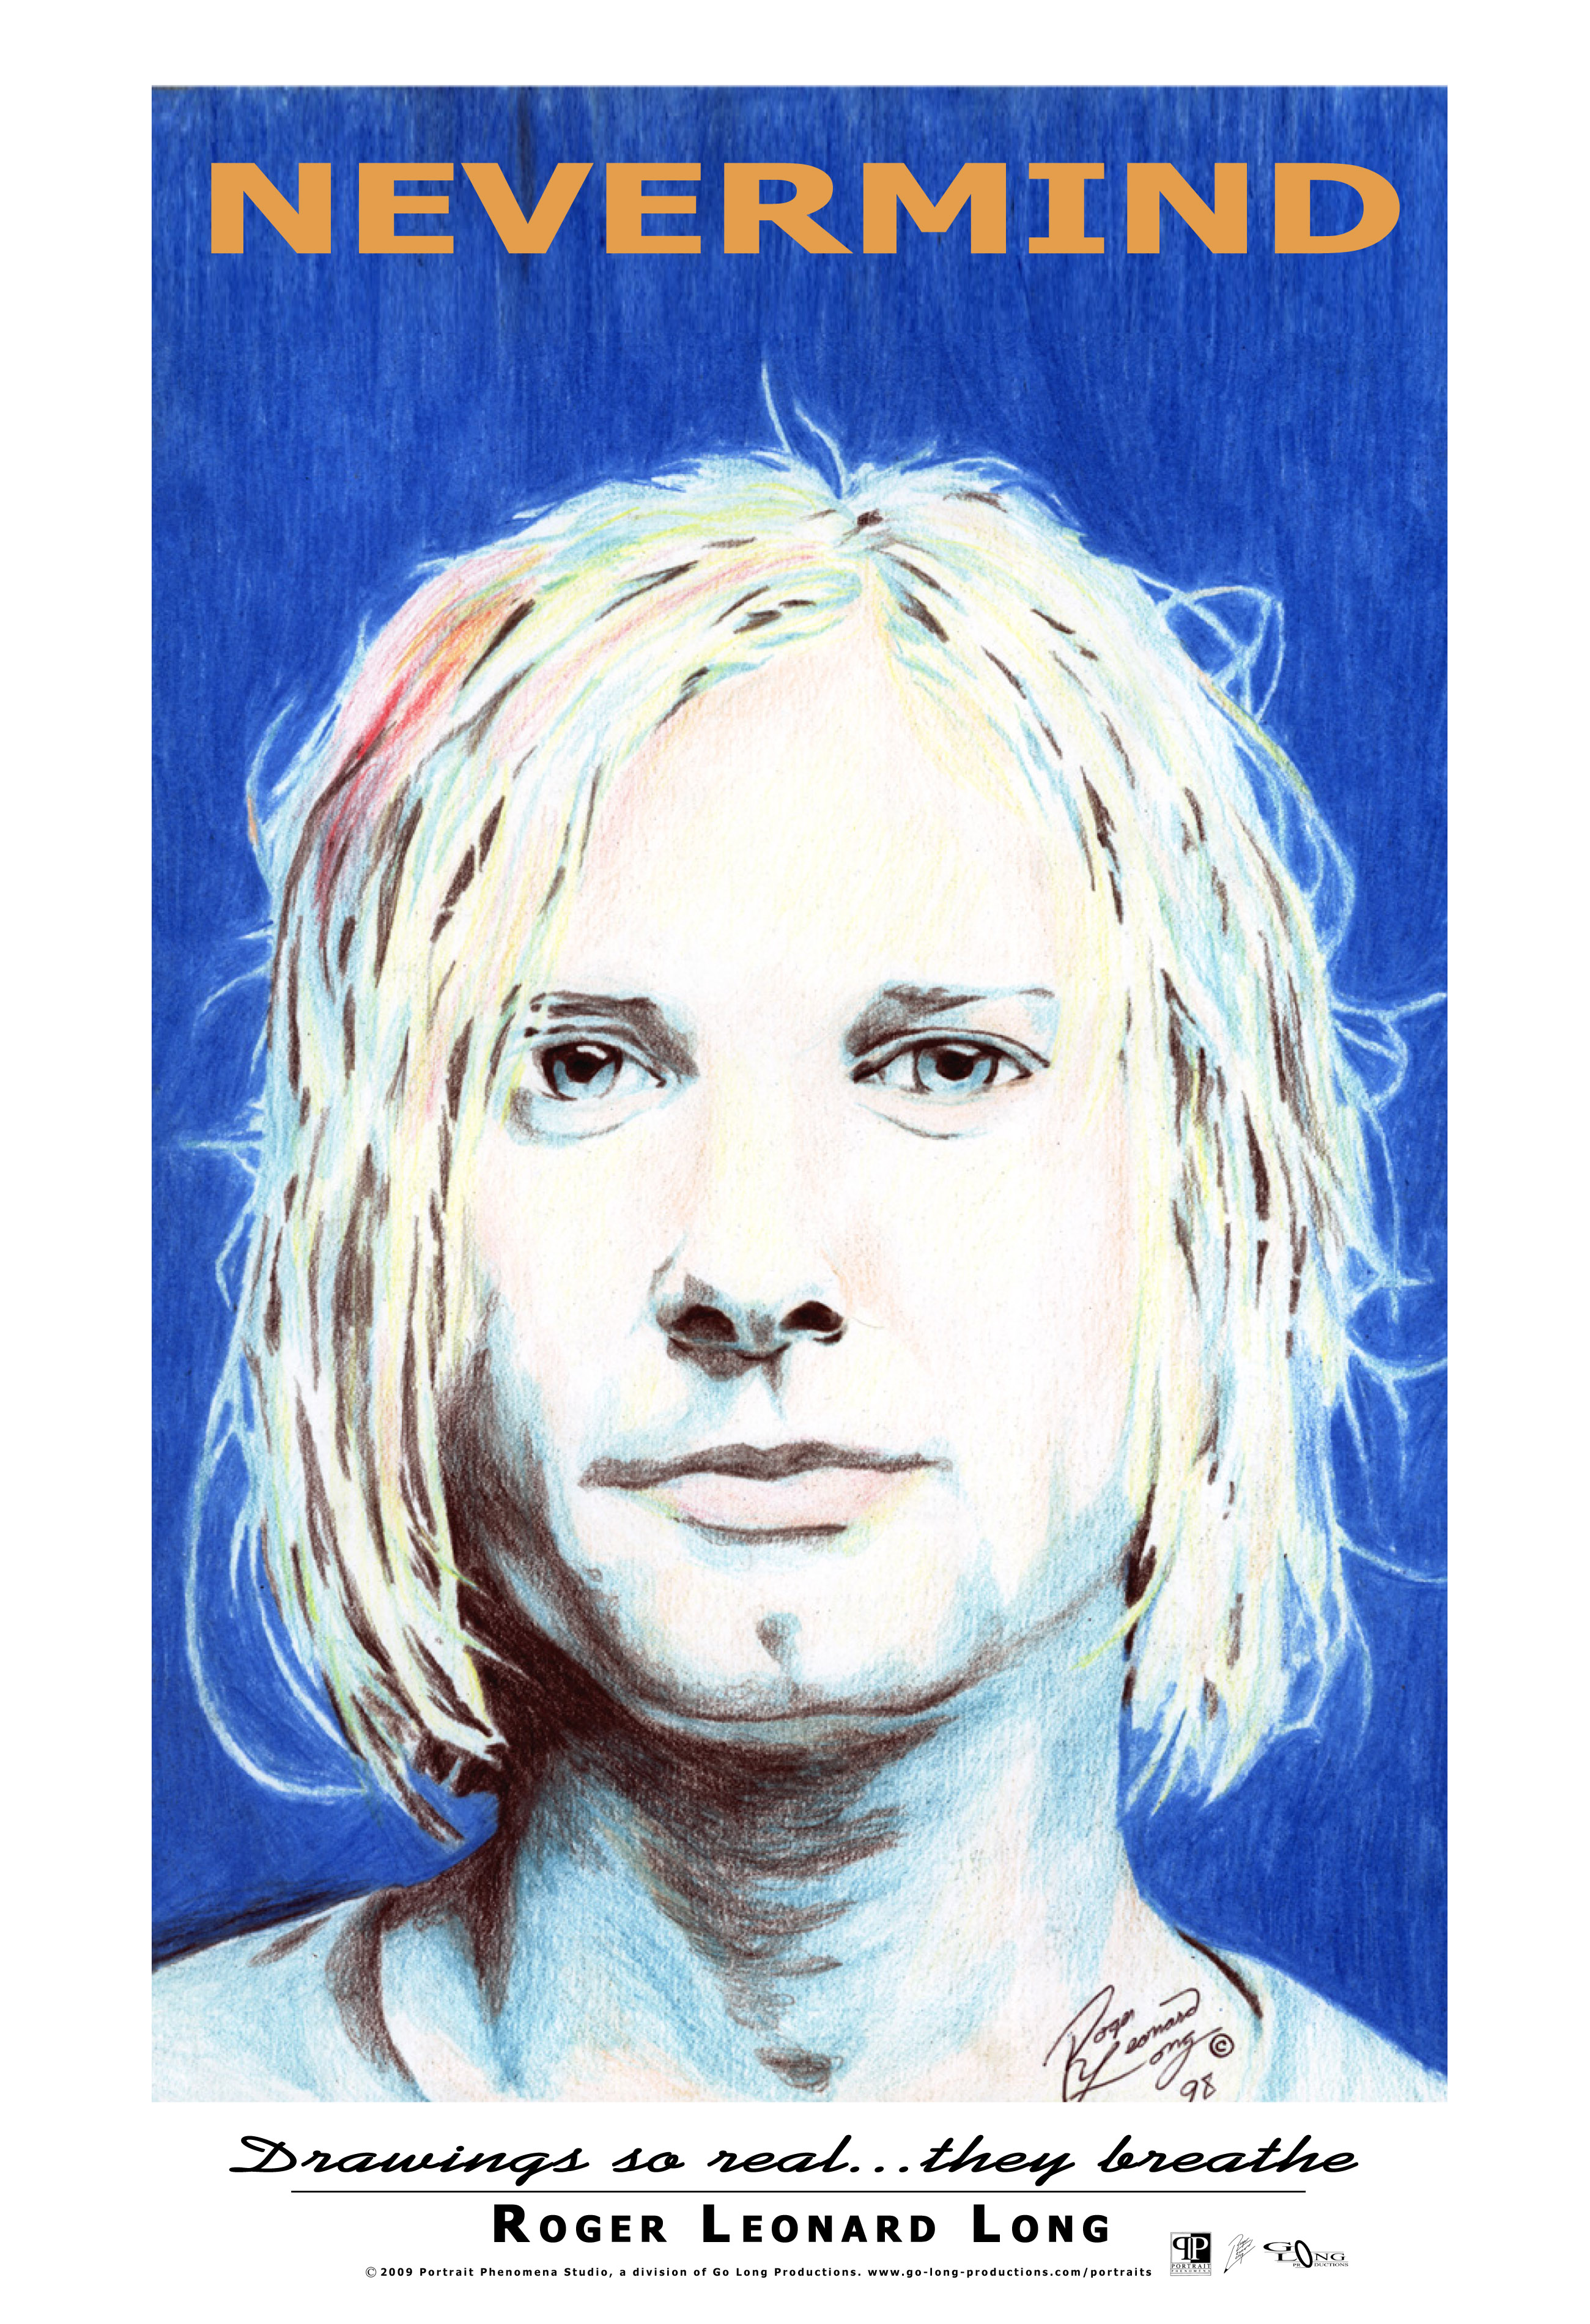 """This is an exclusive original poster from Roger Leonard Long. It features his photo realistic portrait drawing of Kurt Cobain. Long is a photo realist portraitist in MS, USA and enjoy the distinction of being recognized as among Marquis' Who's Who in the World. The name of his studio is Portrait Phenomena (est. 1998) creating """"drawings so real they breathe."""" Your poster will be securely delivered ready for easy framing/mounting."""